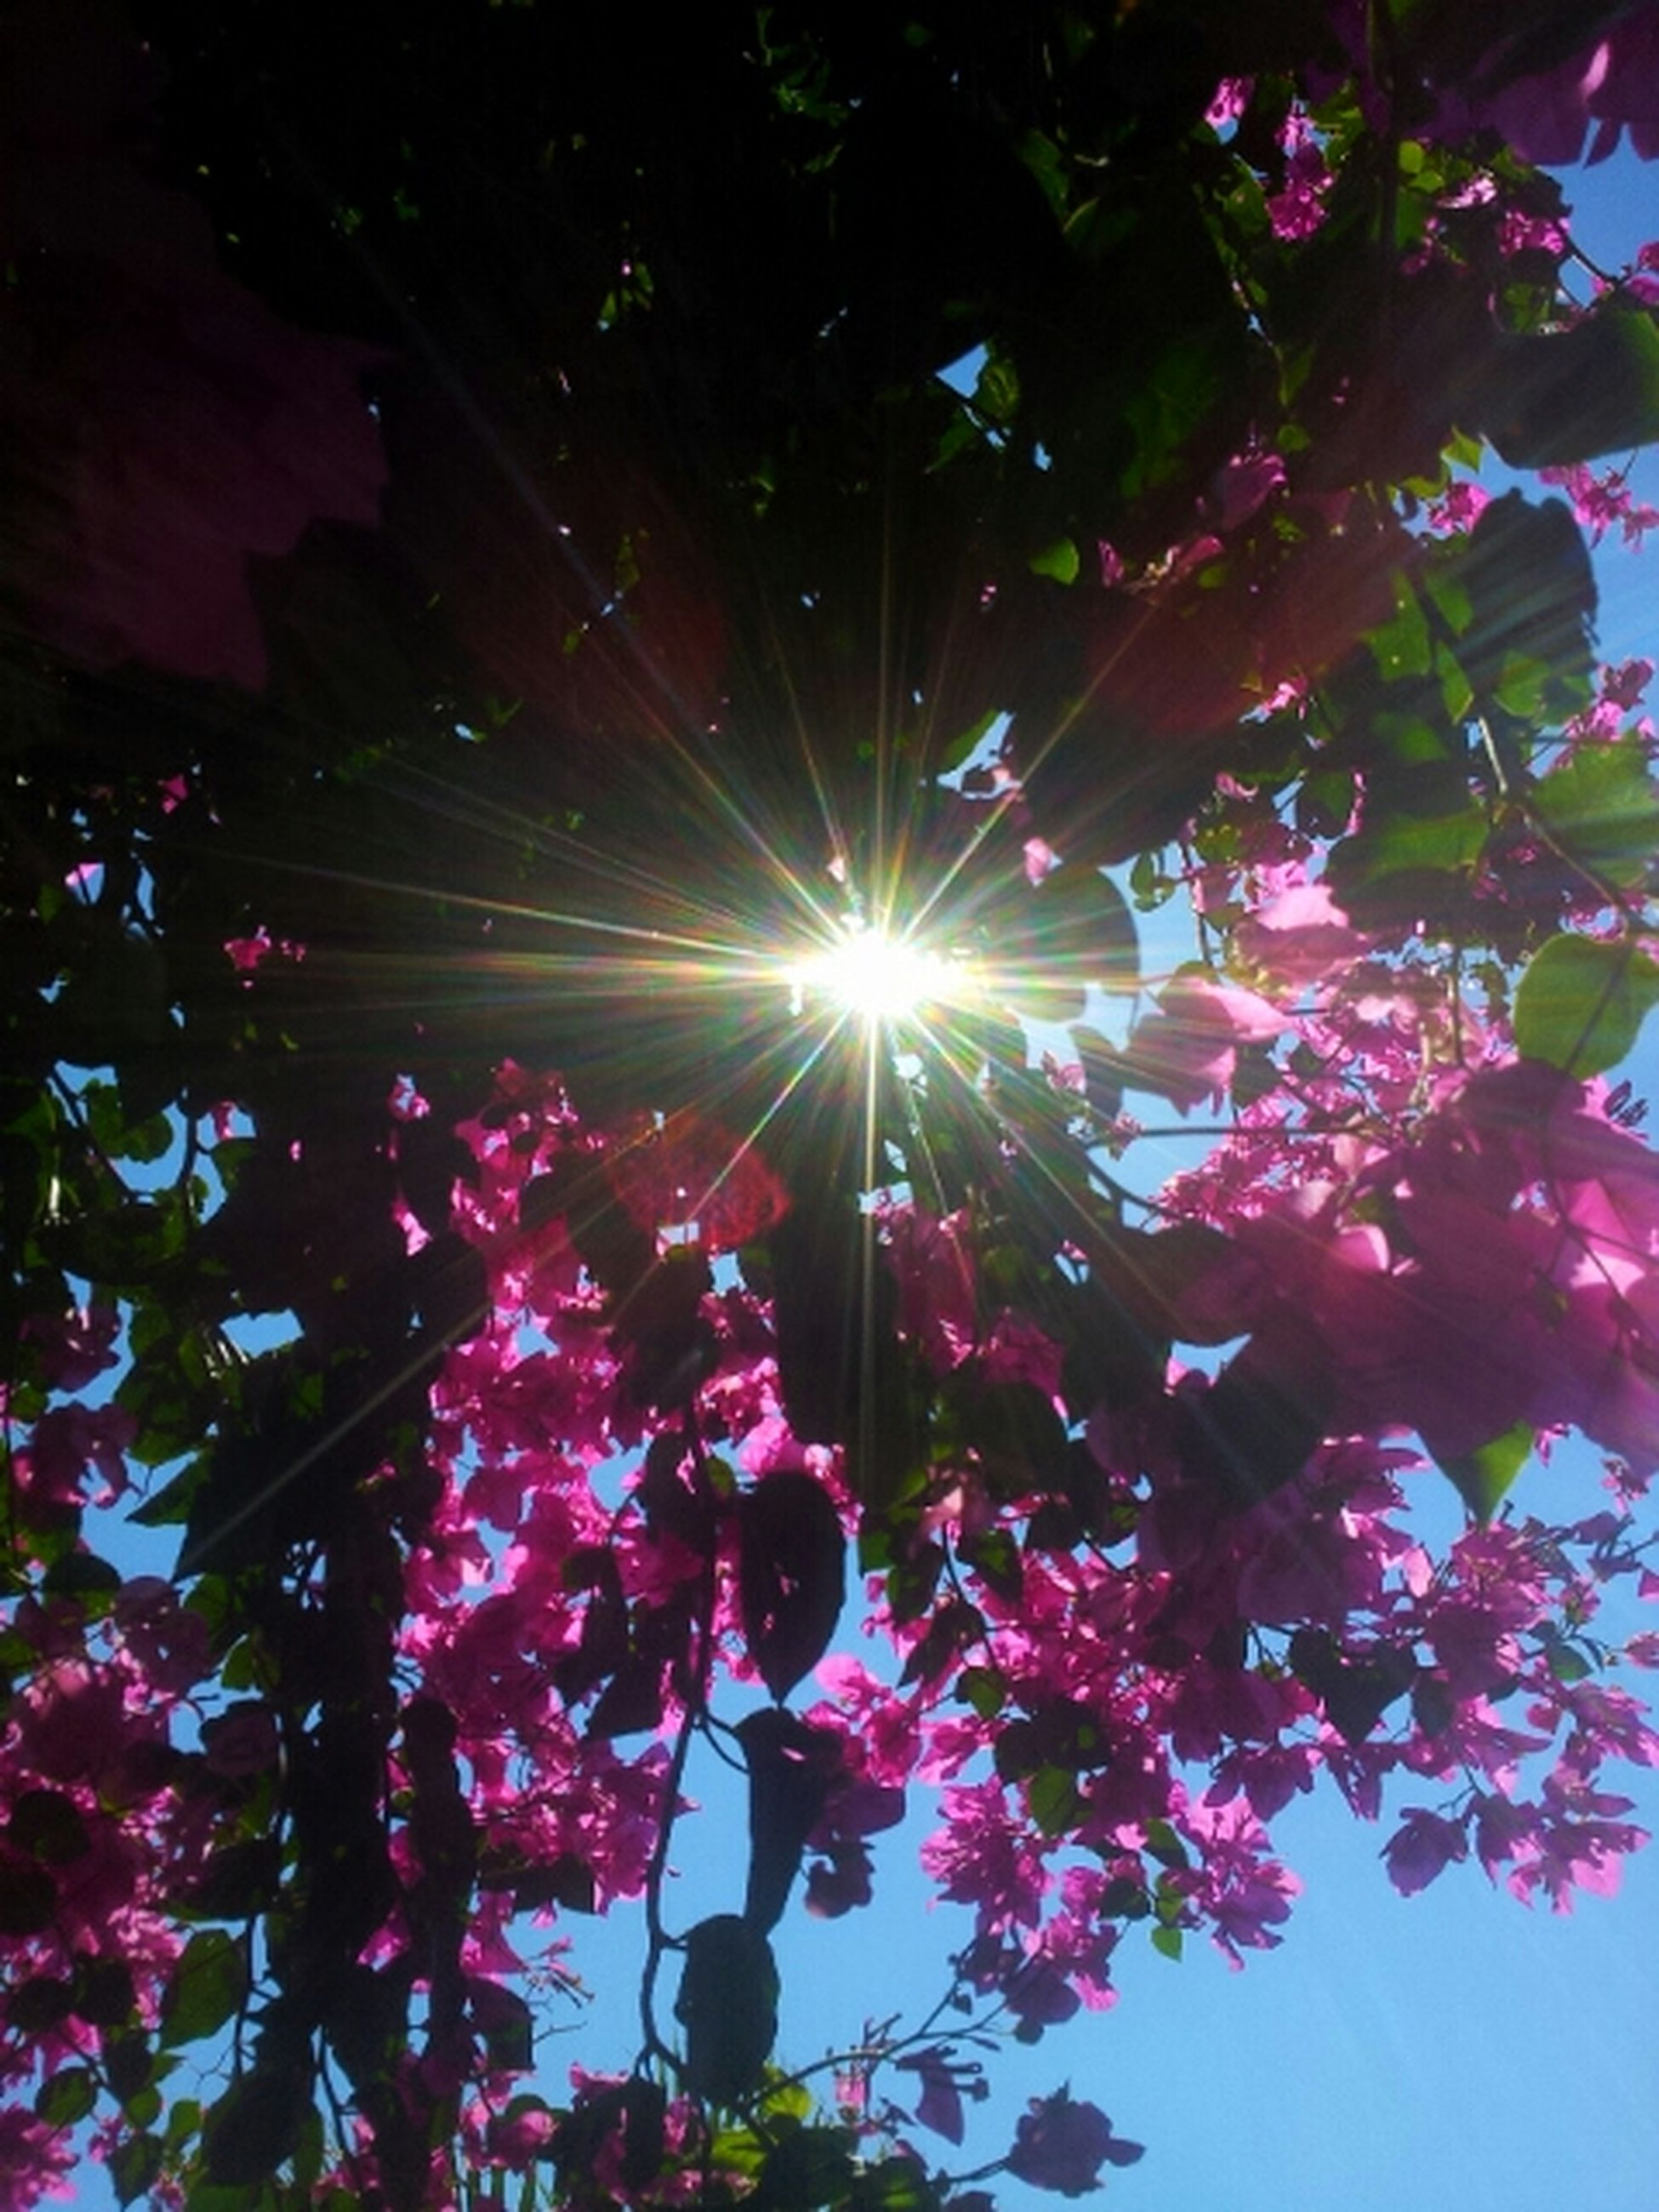 low angle view, flower, growth, pink color, illuminated, tree, freshness, night, lighting equipment, nature, branch, beauty in nature, lens flare, outdoors, red, sunlight, no people, fragility, plant, clear sky